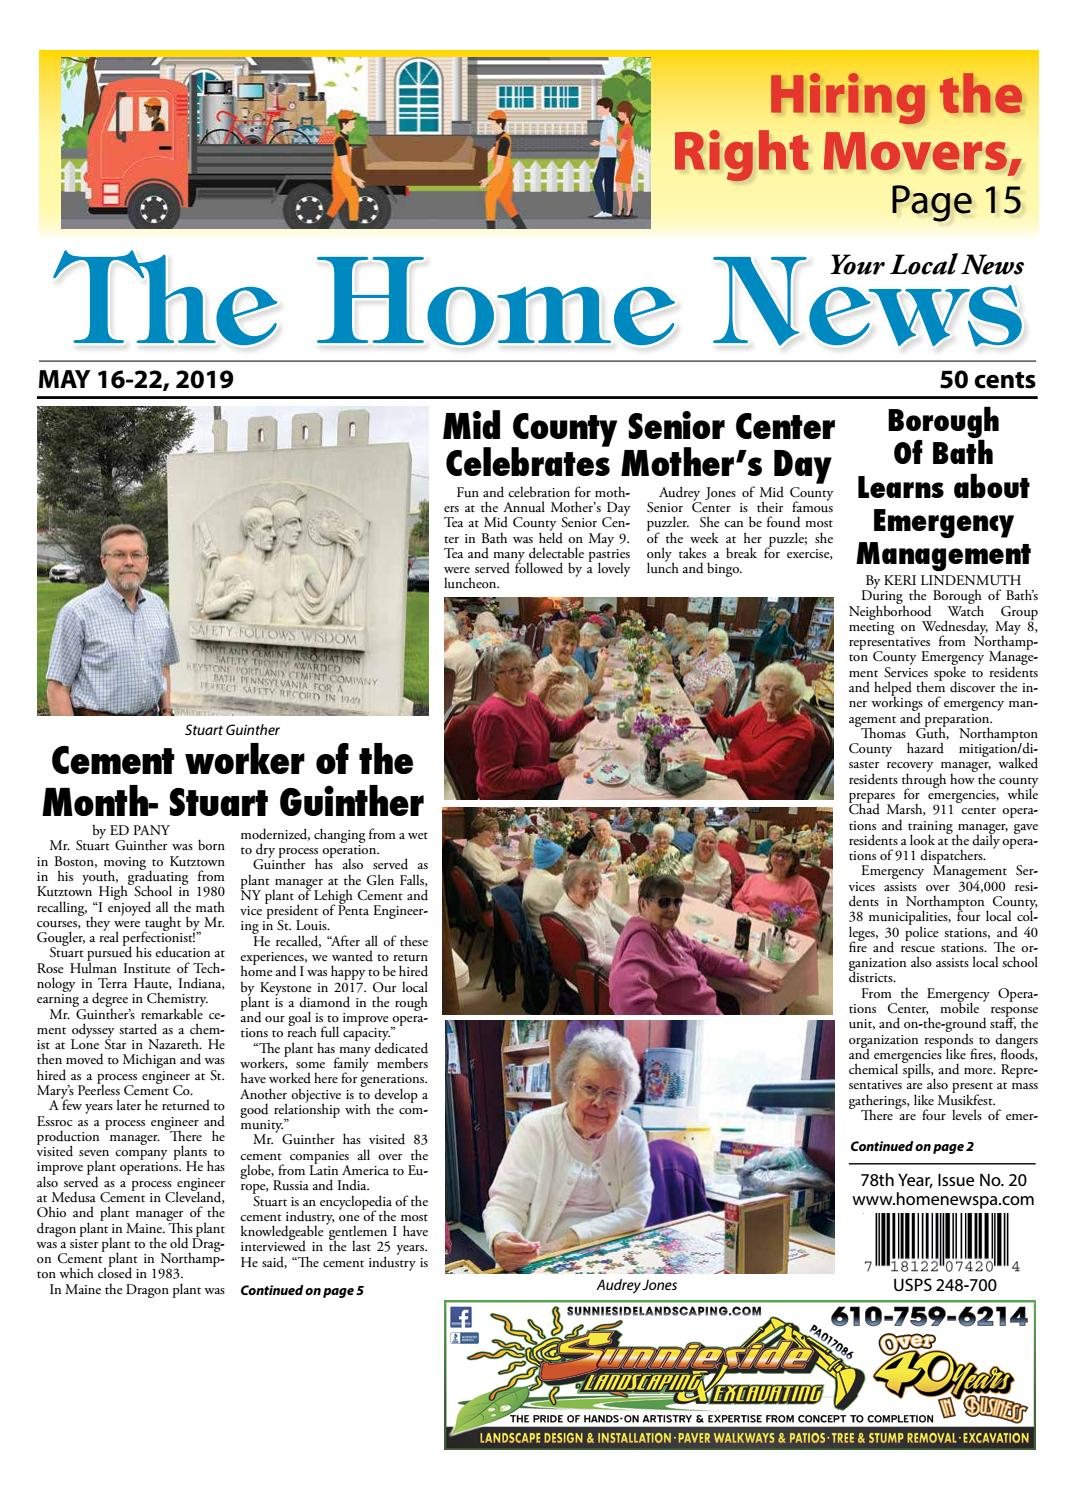 The Home News May 16 by Innovative Designs & Publishing, Inc